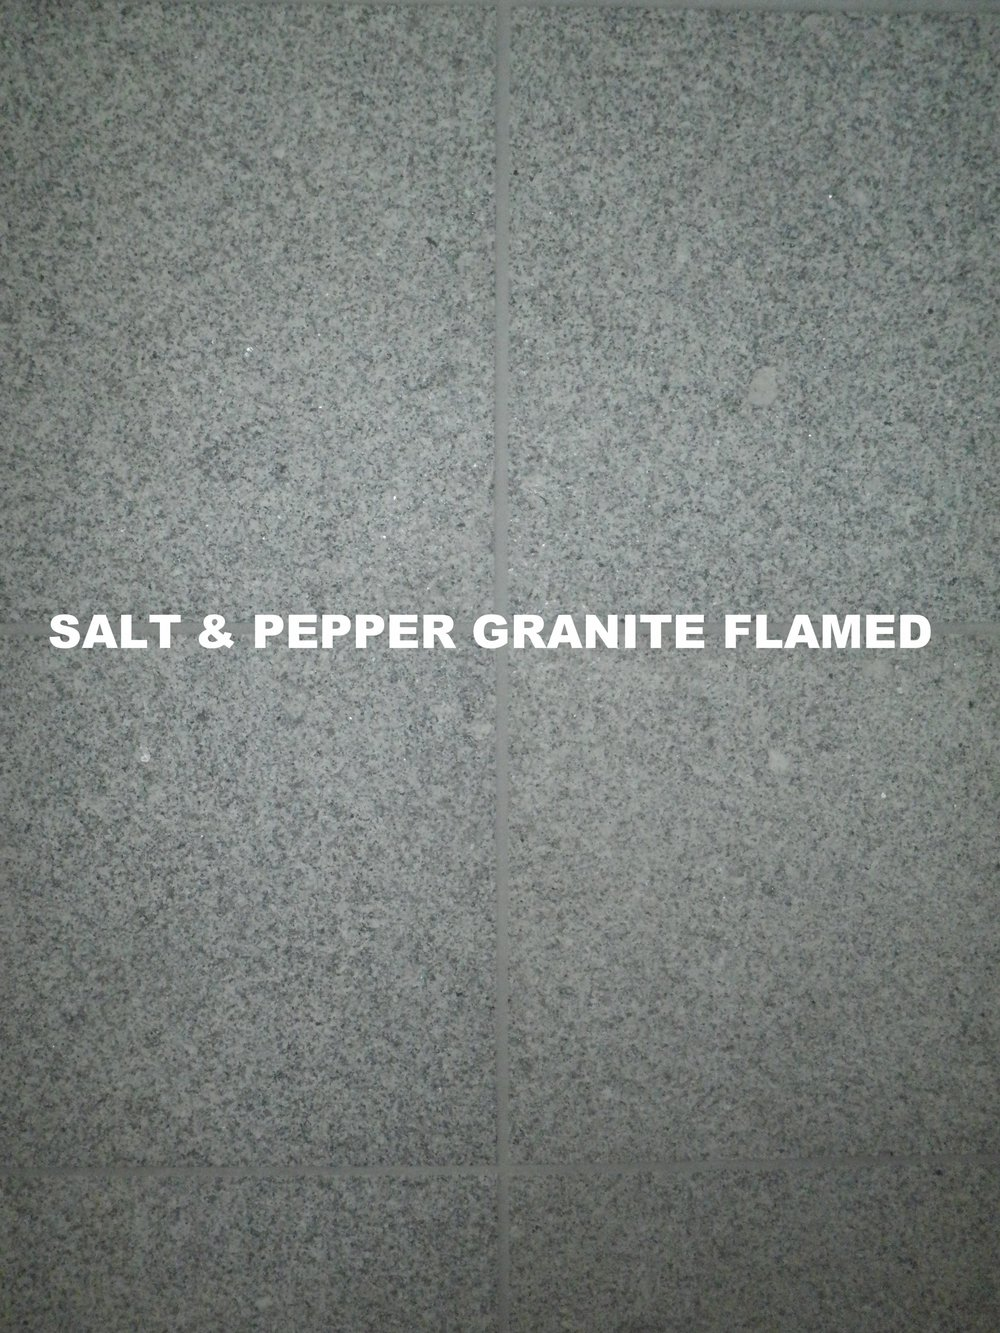 G603 Salt and Pepper.JPG